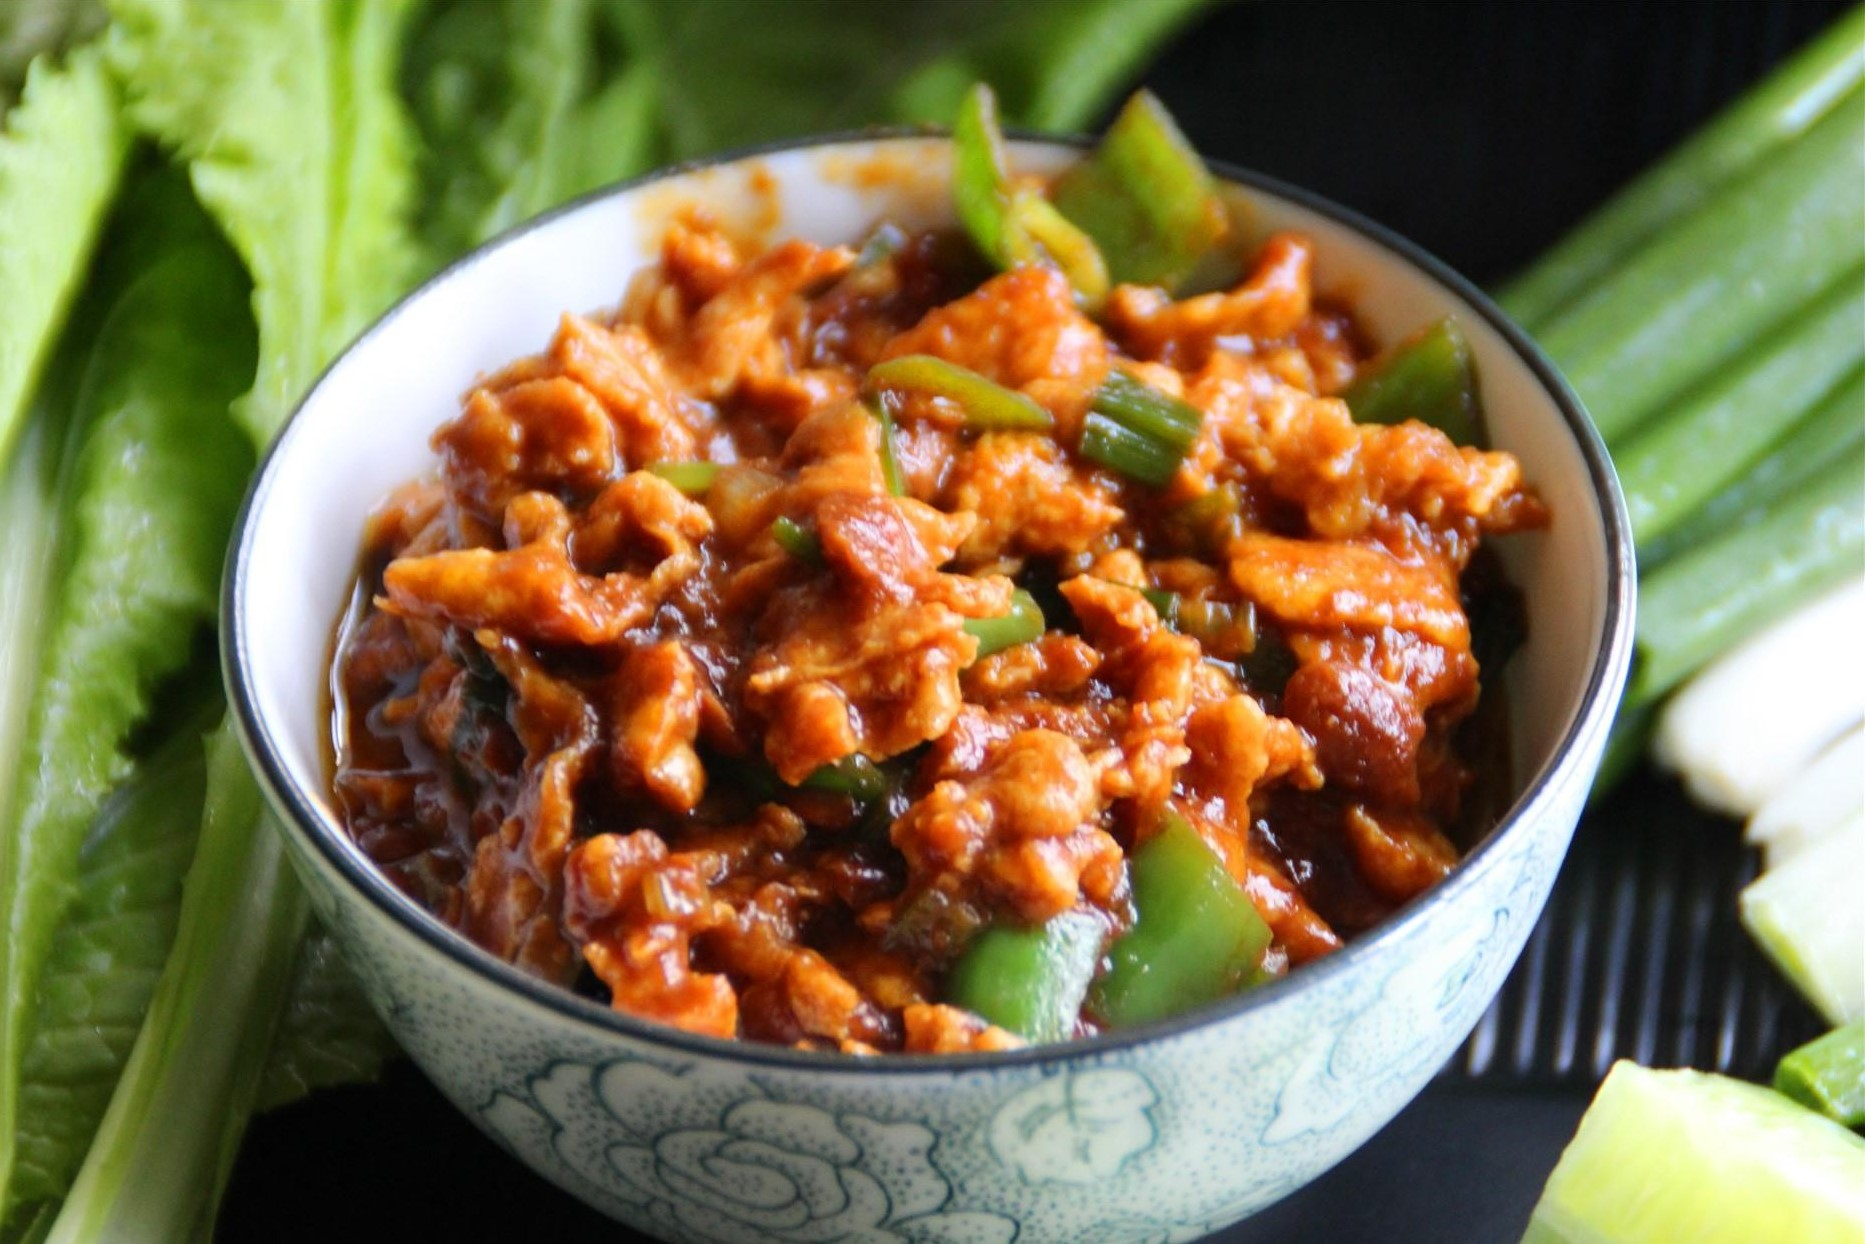 Fried Egg in Chinese Soybean Paste Recipes